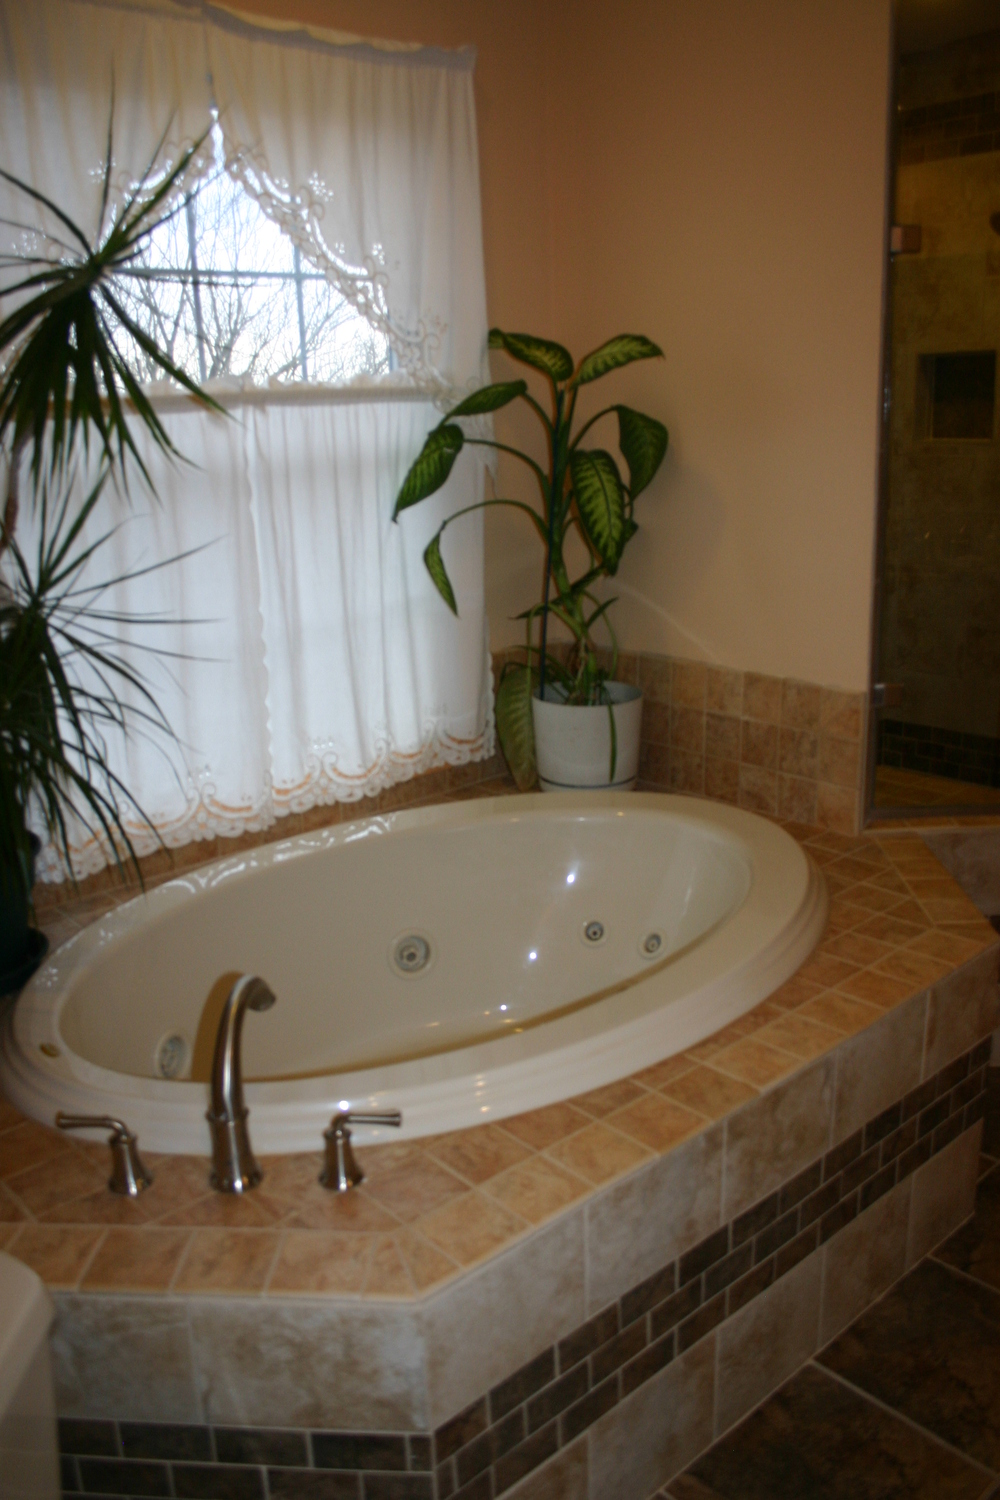 AFTER: the original tub was replaced by a modern smaller tub with a tiled platform.  This gave the clients the opportunity to have a much larger shower.